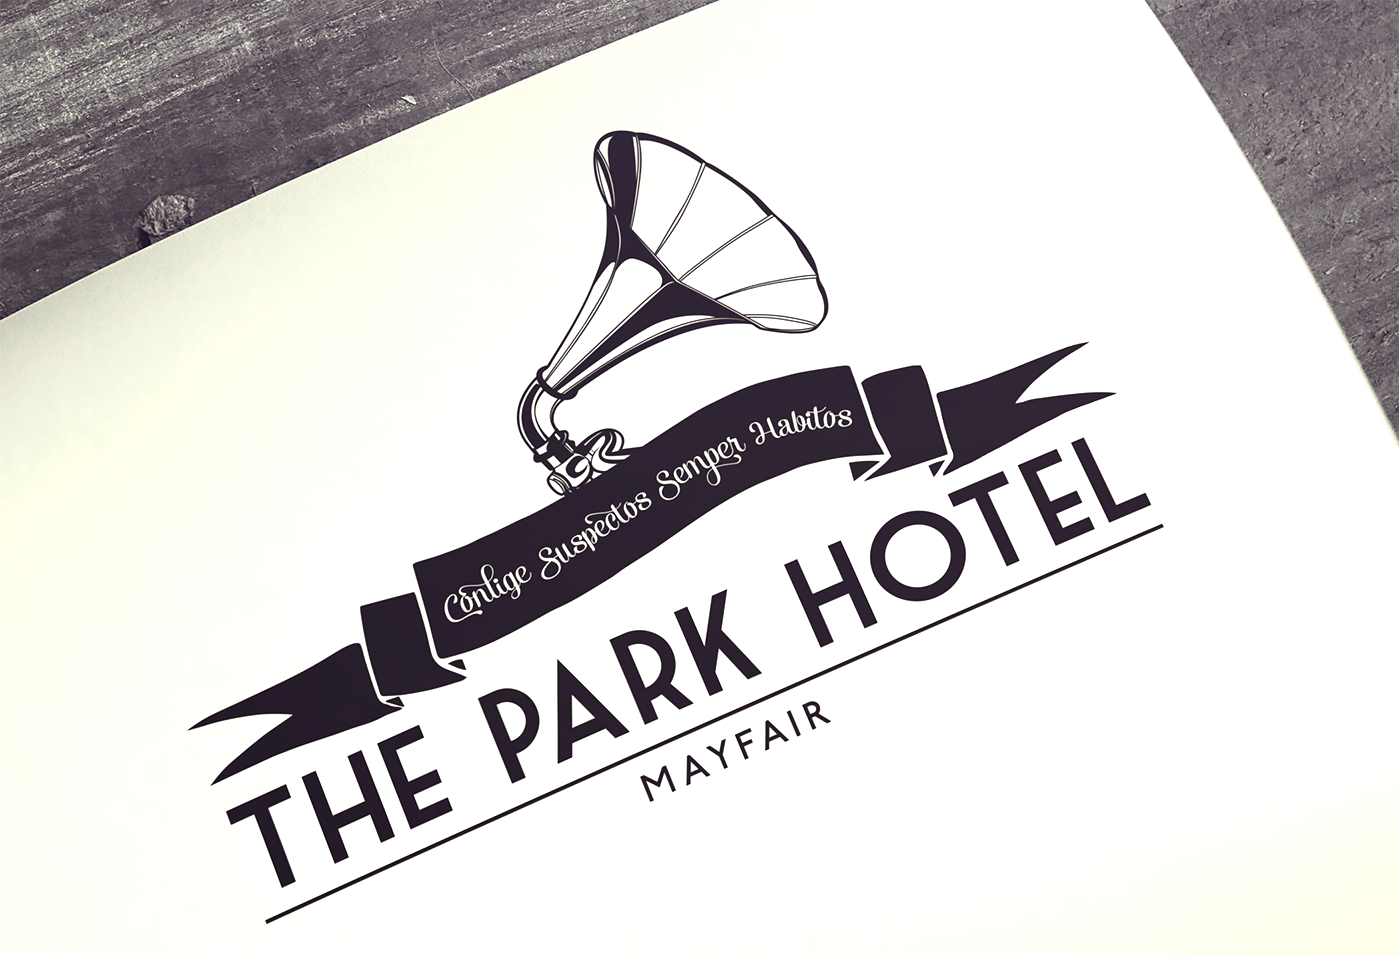 Bespoke logo design for Park Hotel, Mayfair at Boomtown Festival